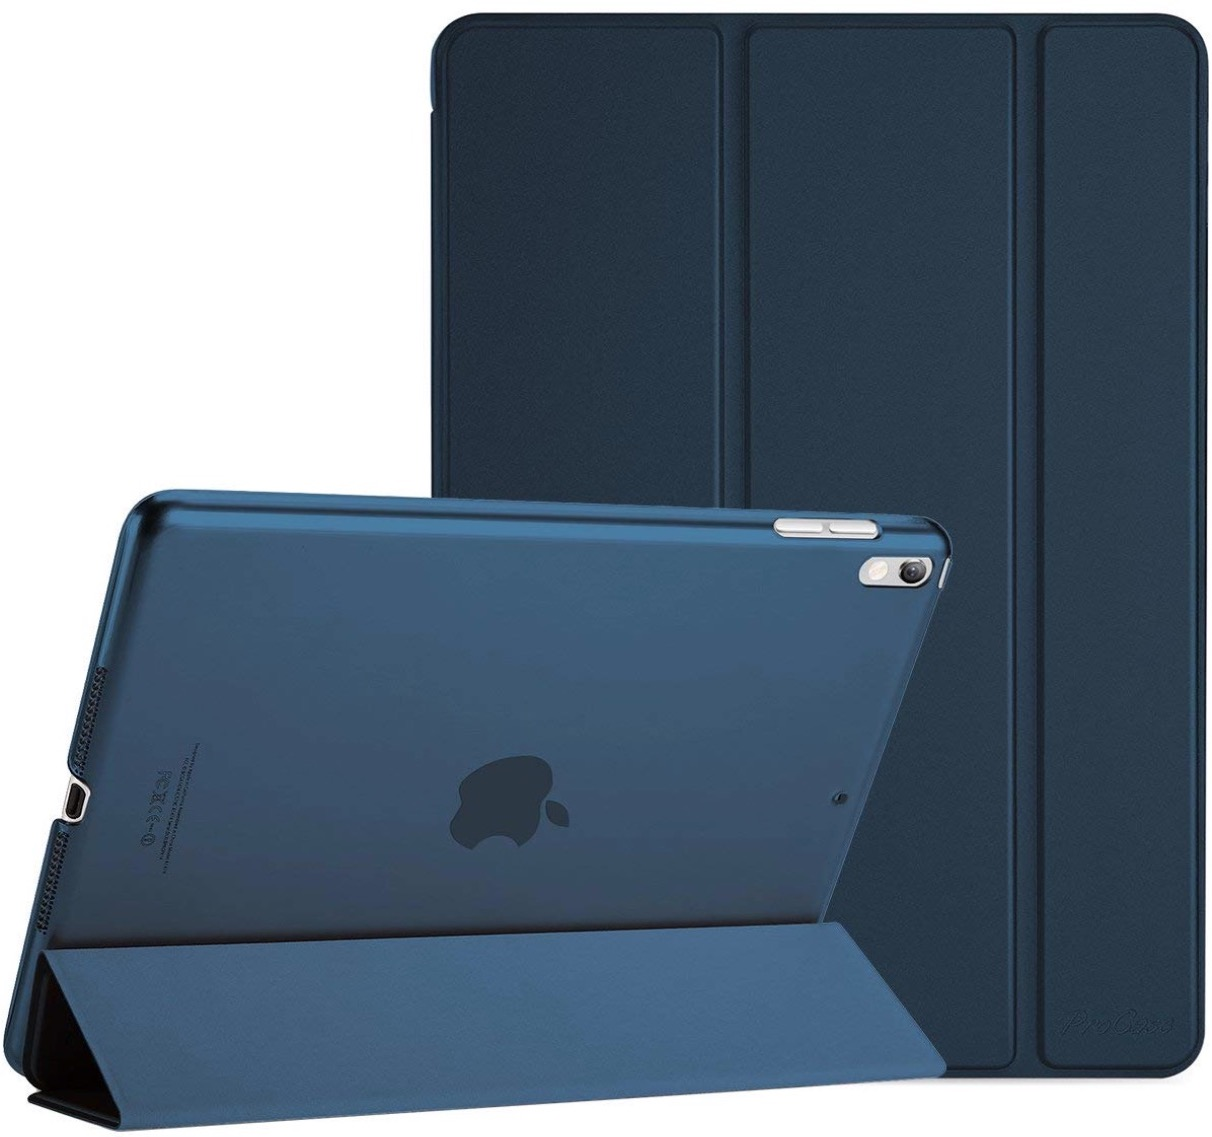 Best cases for the iPad Air 3 in 2019 | TechnoBuffalo